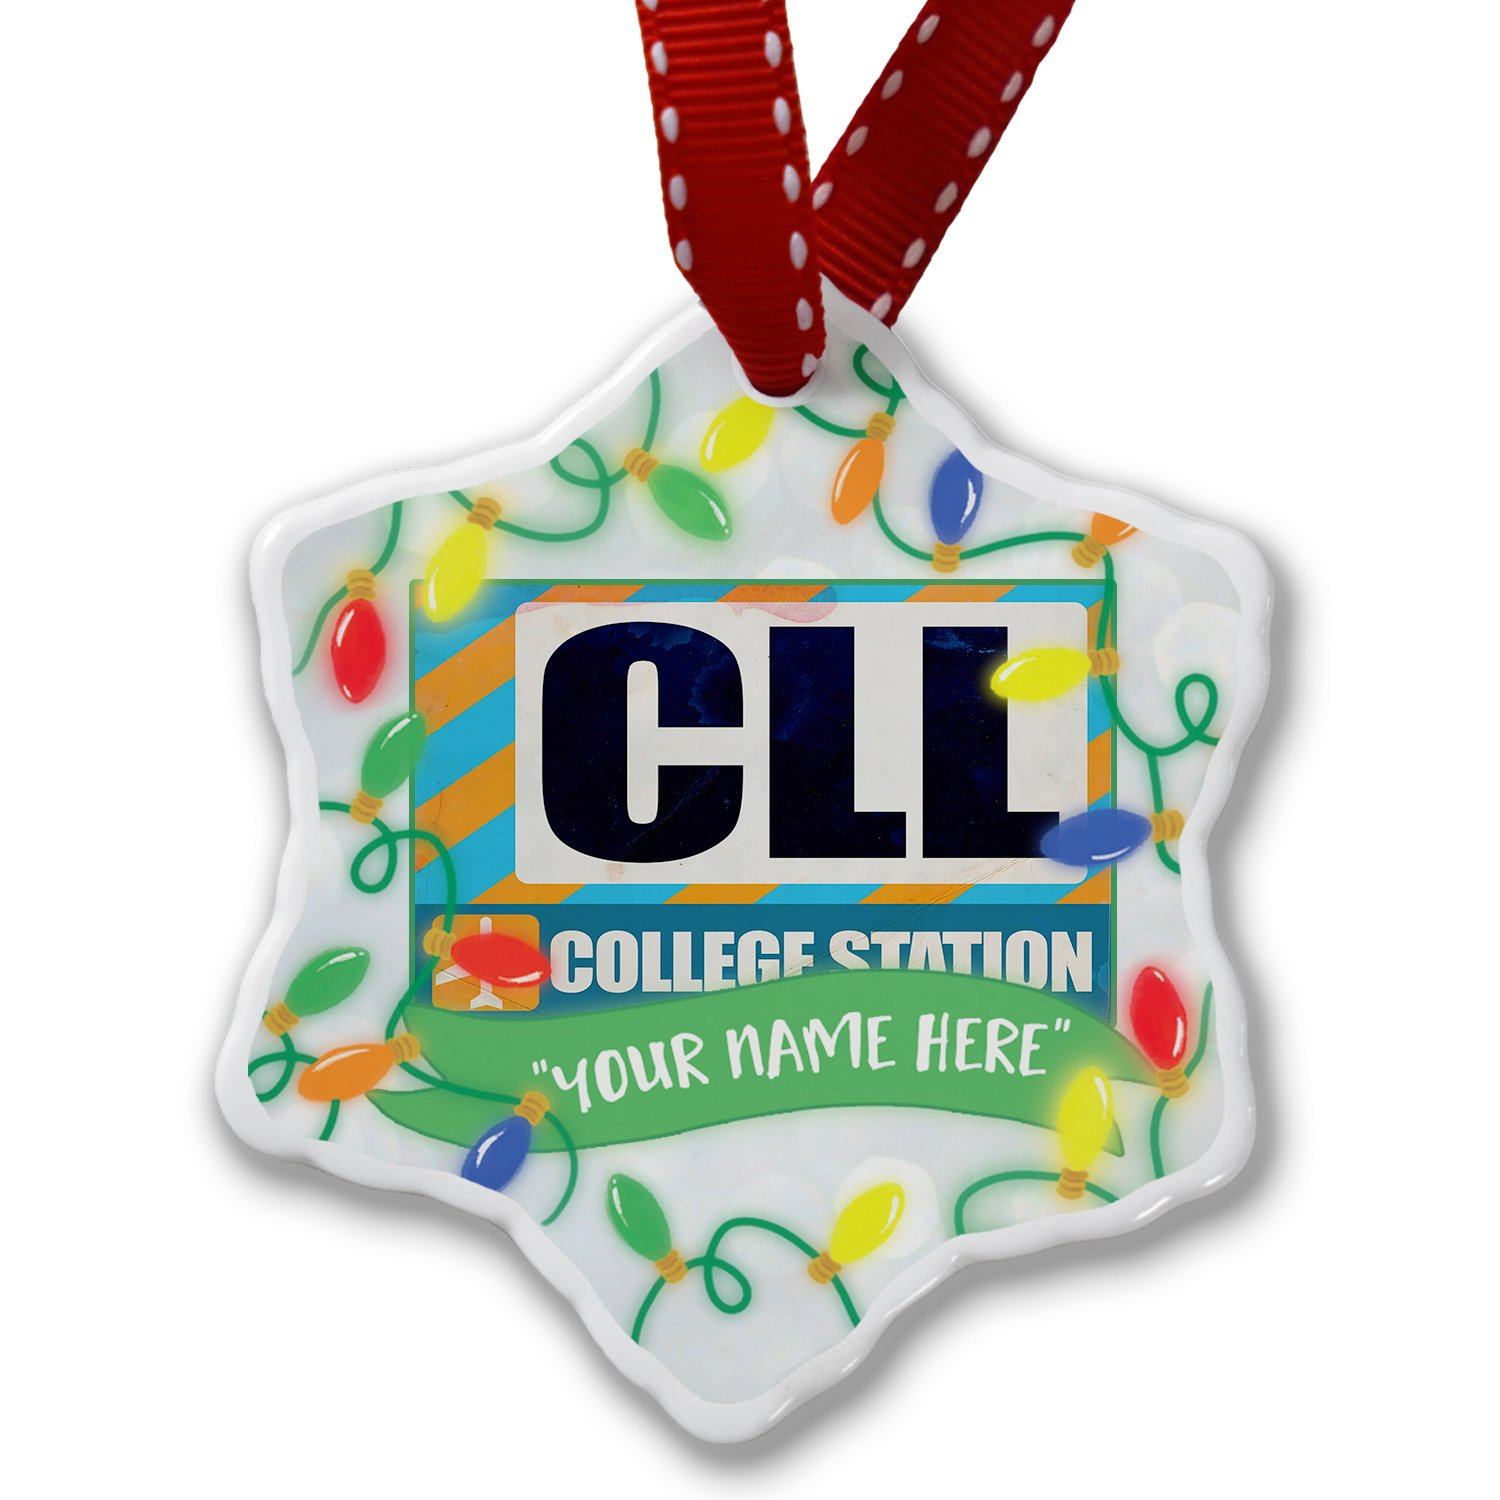 Personalized Name Christmas Ornament, Airportcode CLL College Station NEONBLOND